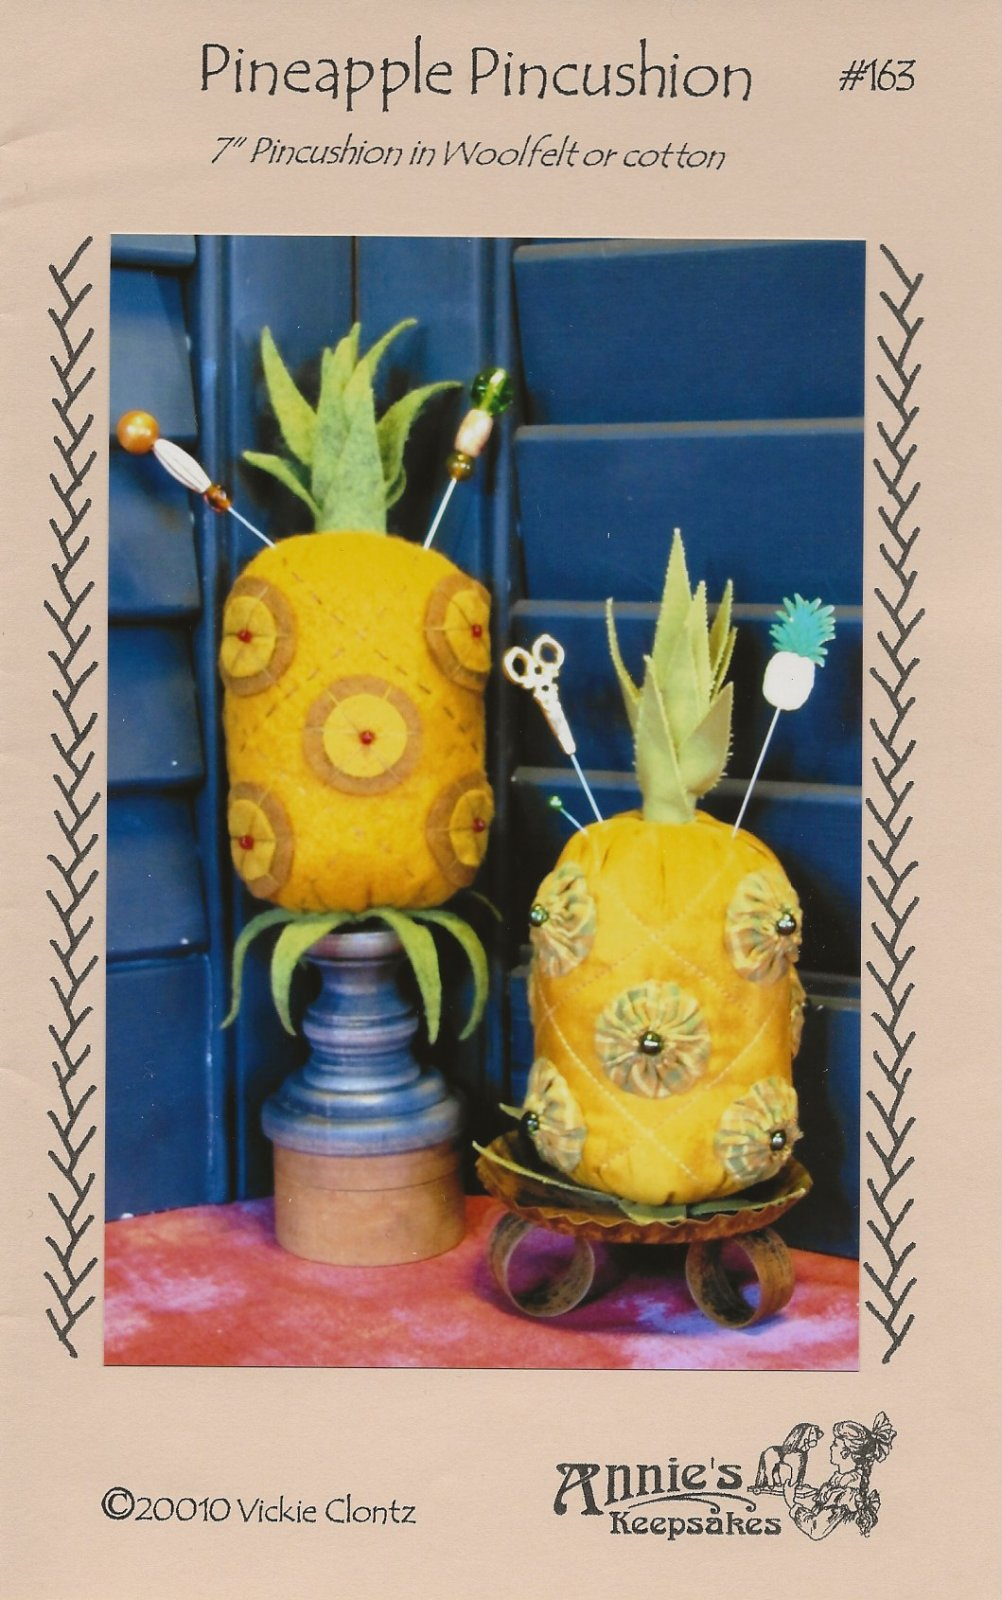 Pineapple Pincushion